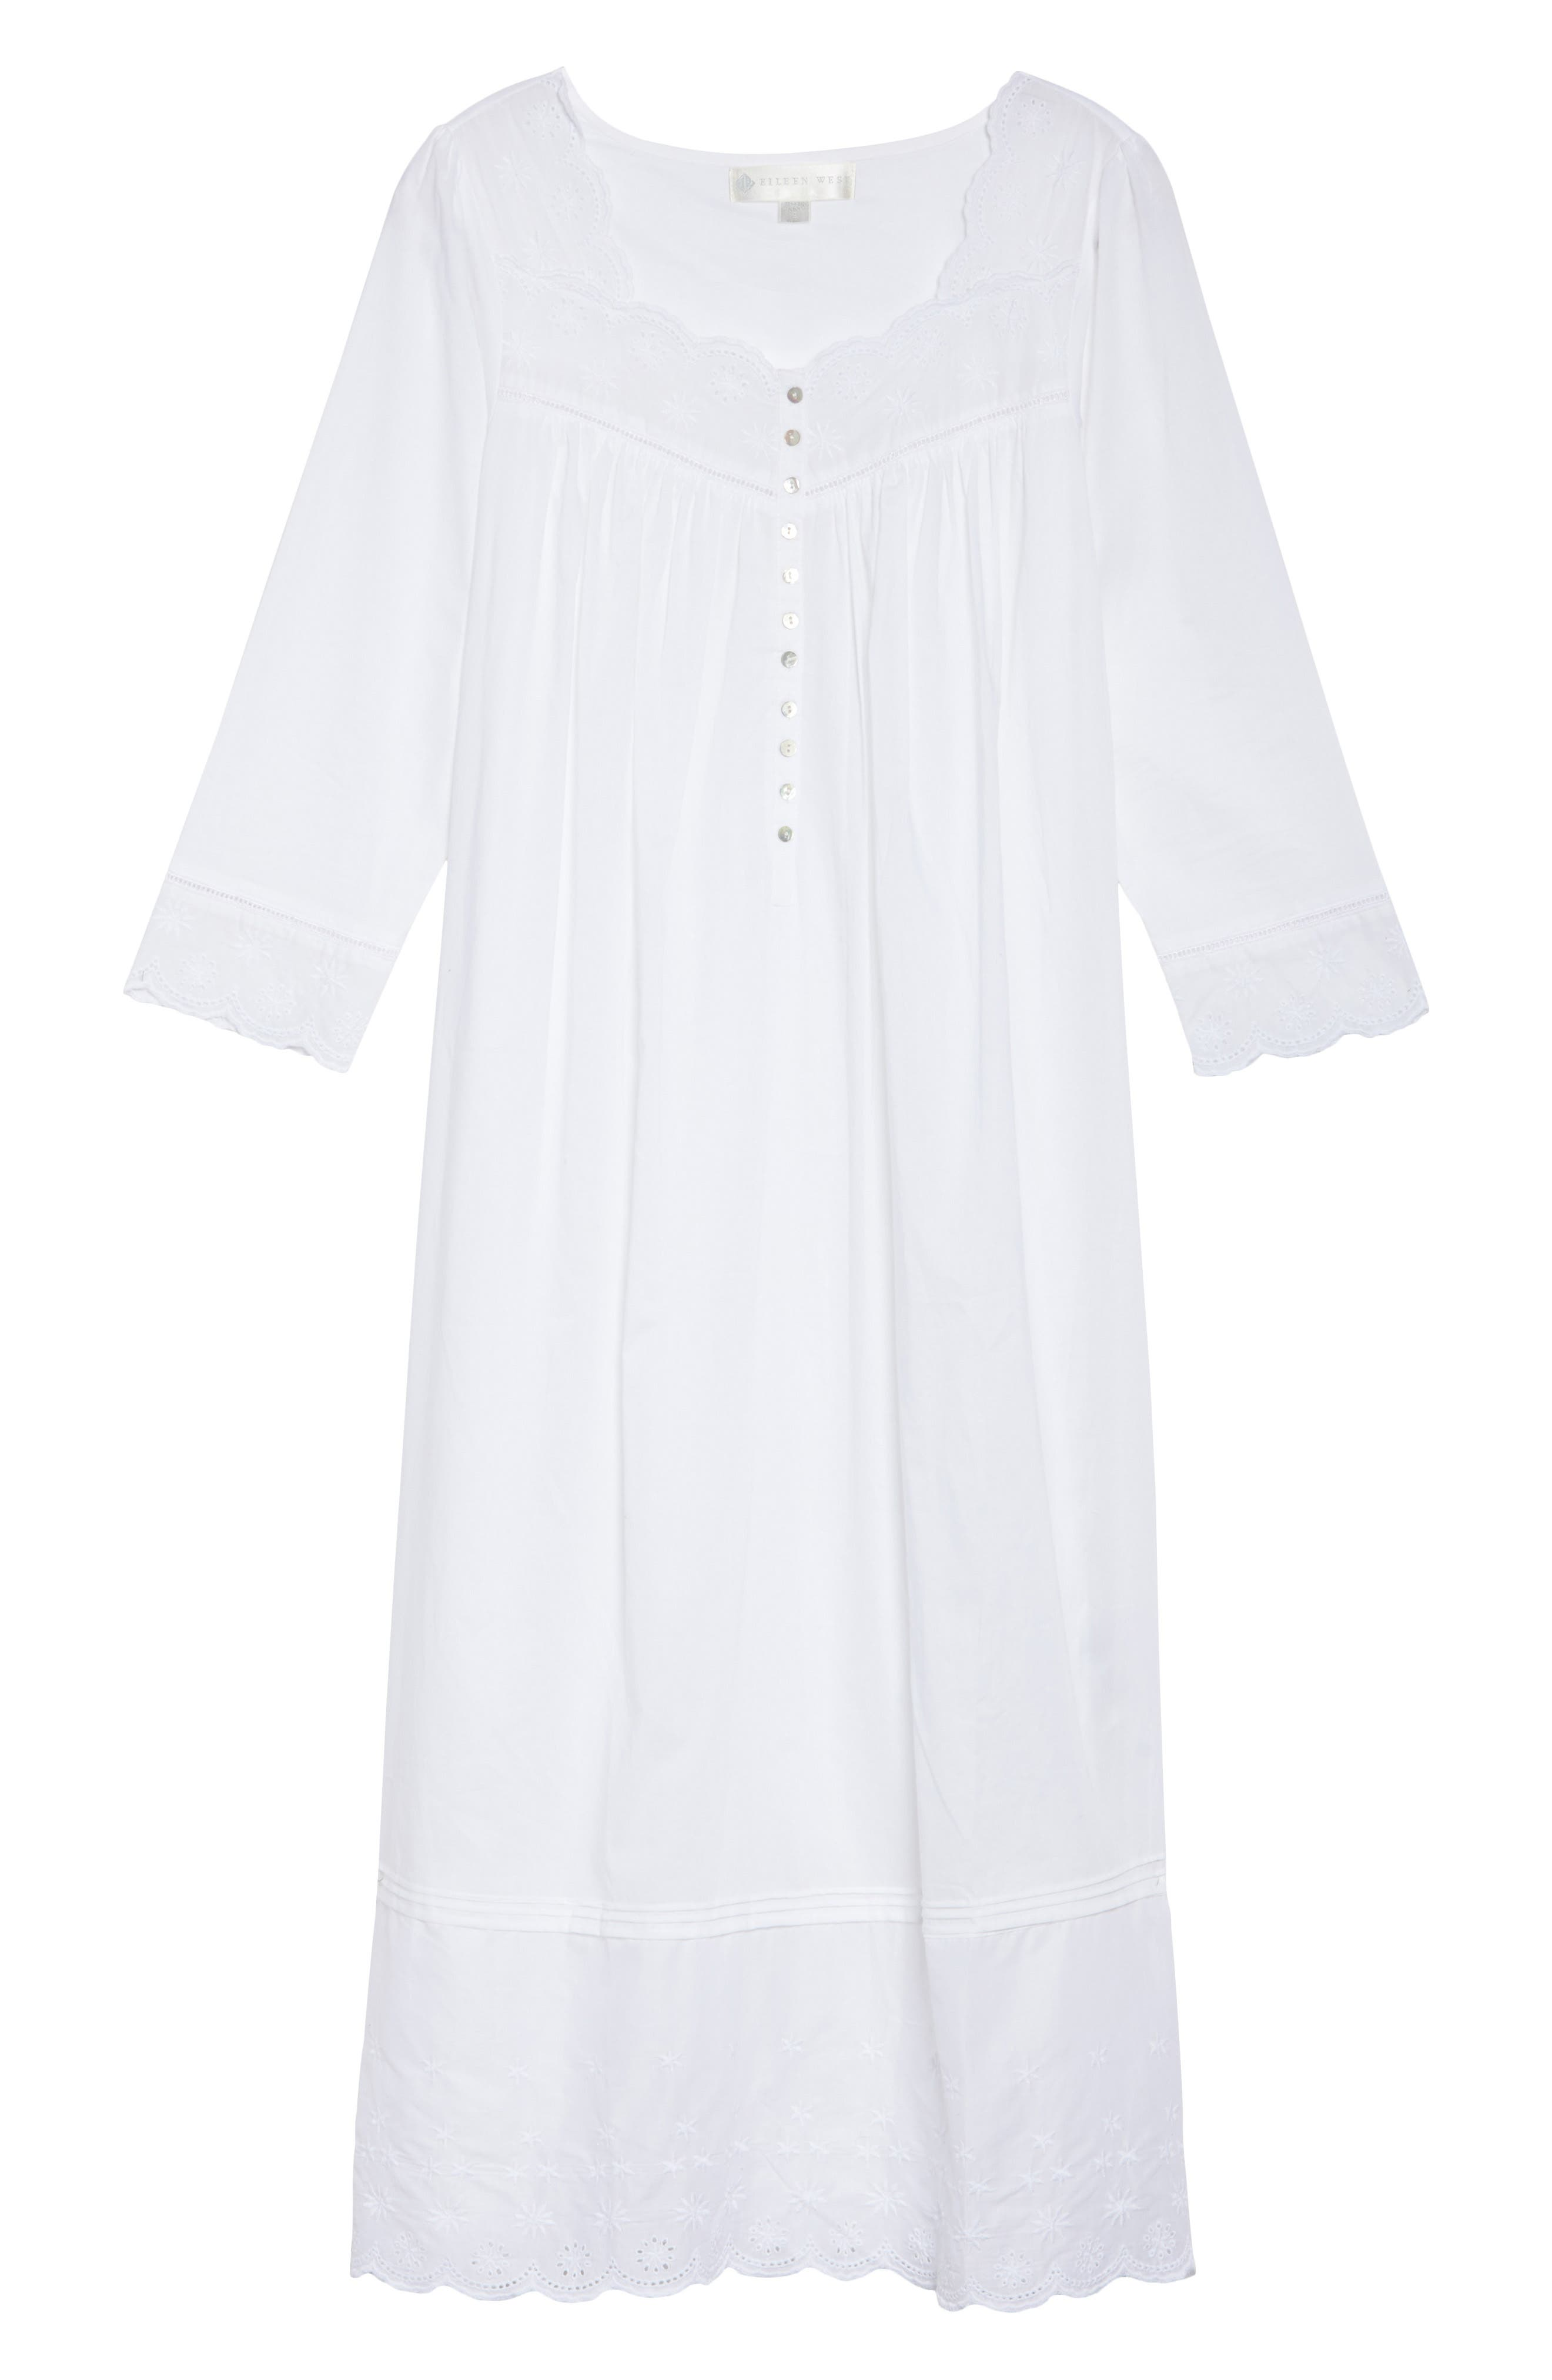 Eyelet Nightgown,                             Alternate thumbnail 4, color,                             White Floral